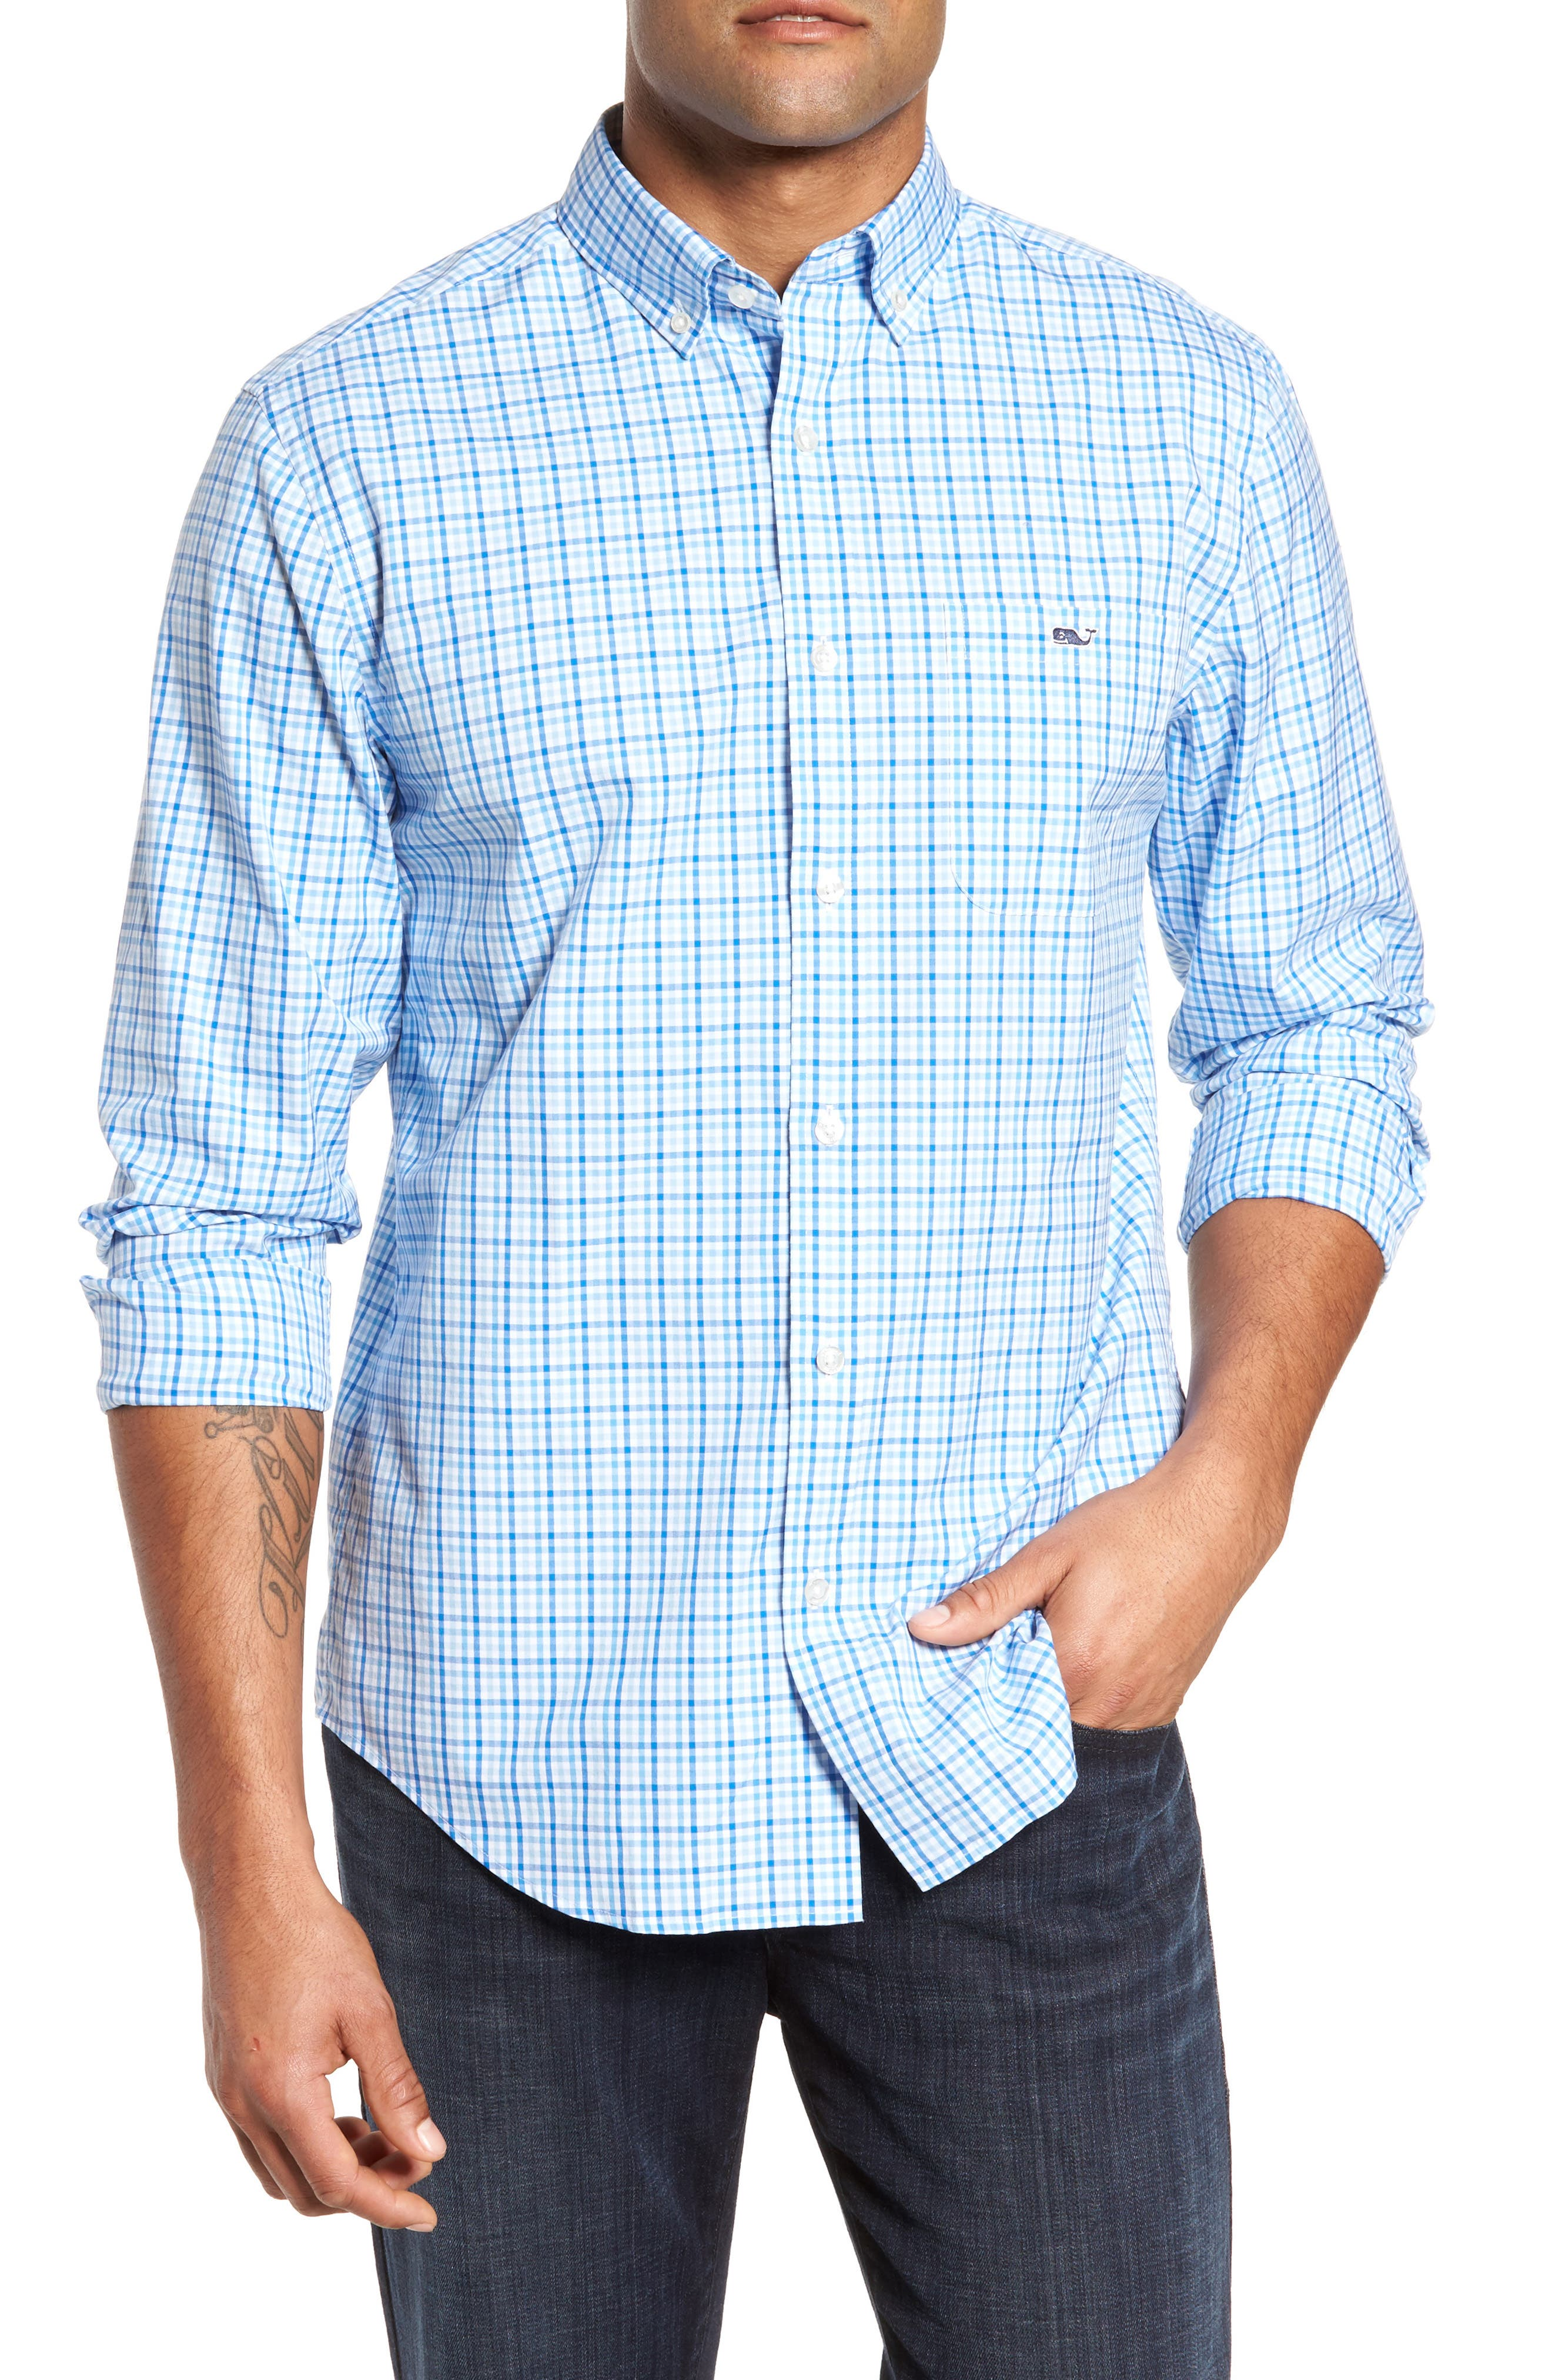 Munroe Tucker Classic Fit Gingham Sport Shirt,                         Main,                         color, Jake Blue